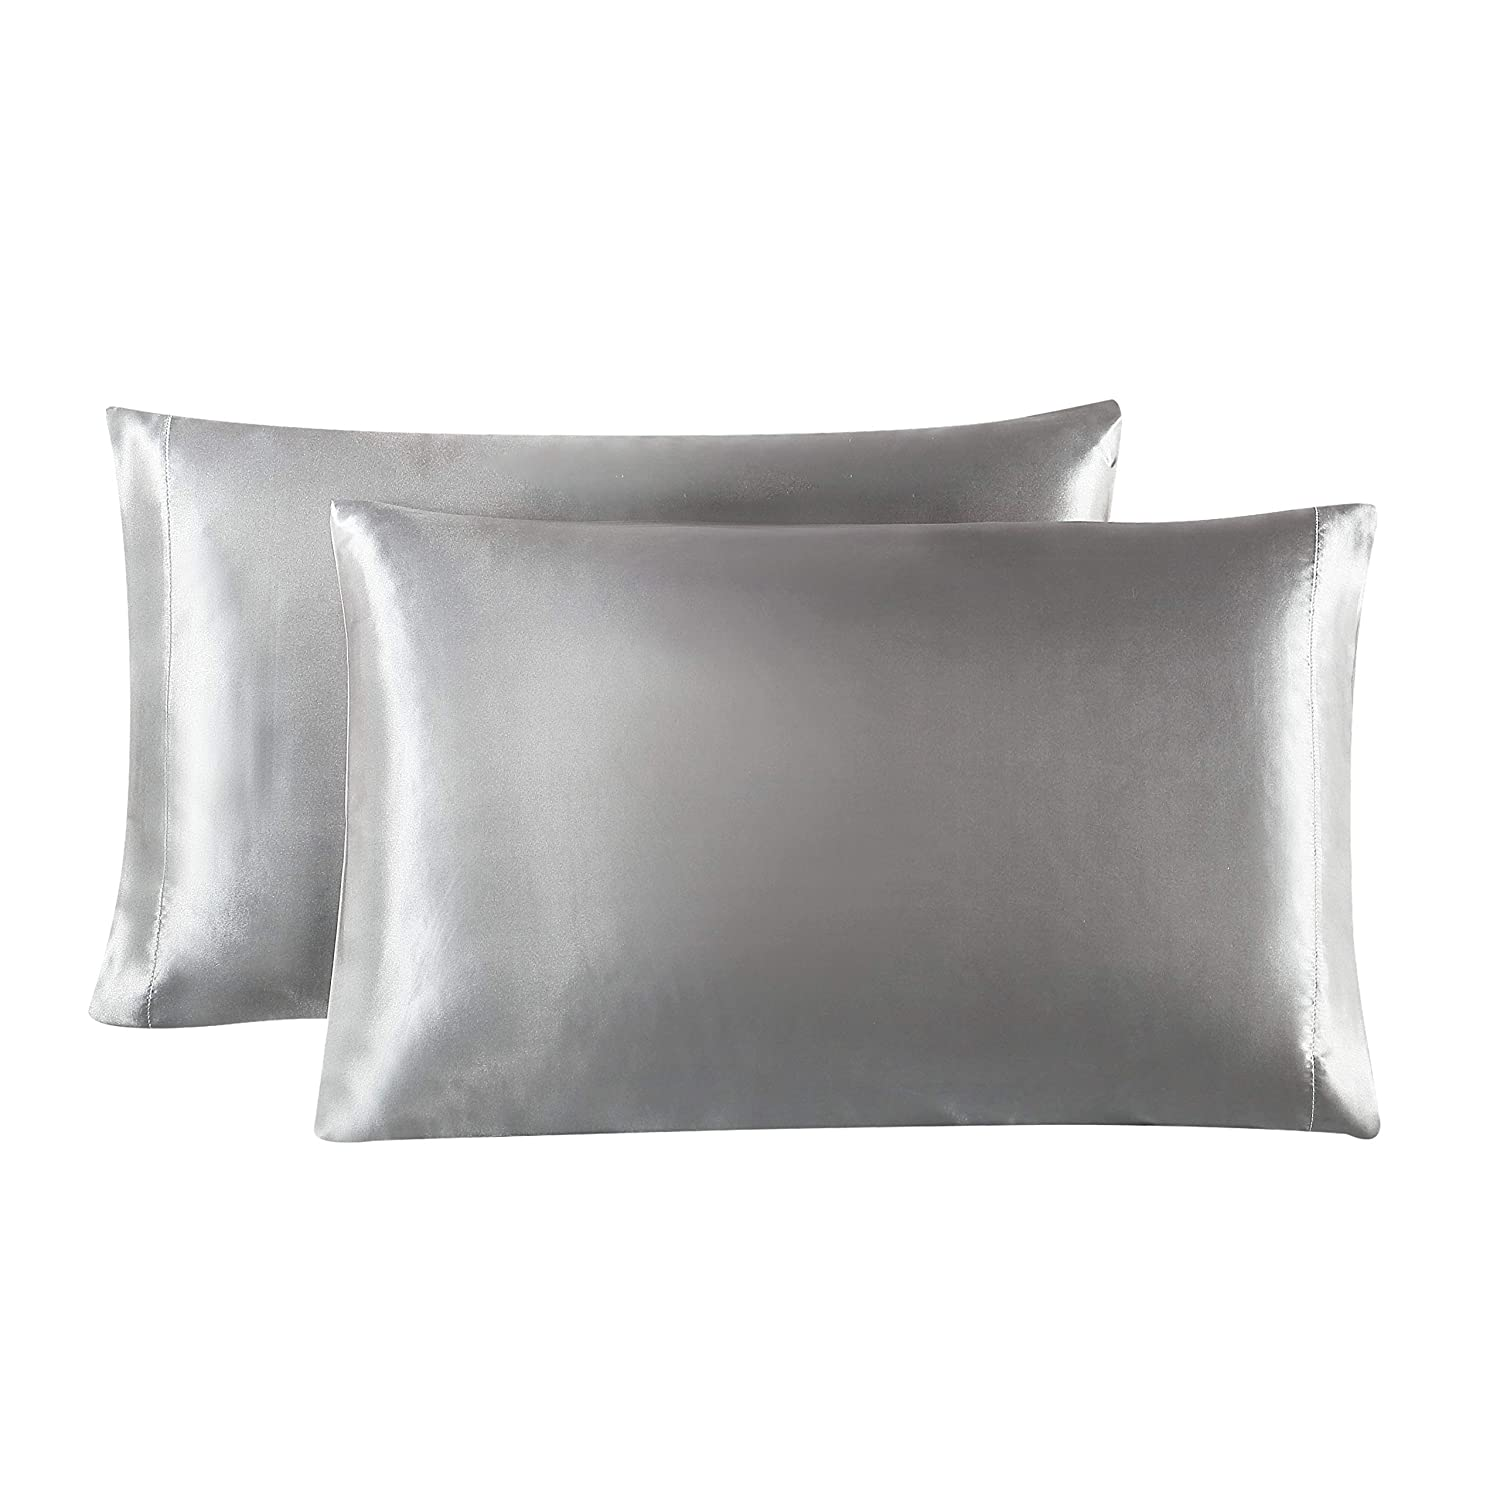 Love's cabin Silk Satin Pillowcase for Hair and Skin (Light Grey, 20x26 inches) Slip Pillow Cases Standard Size Set of 2 - Satin Cooling Pillow Covers with Envelope Closure